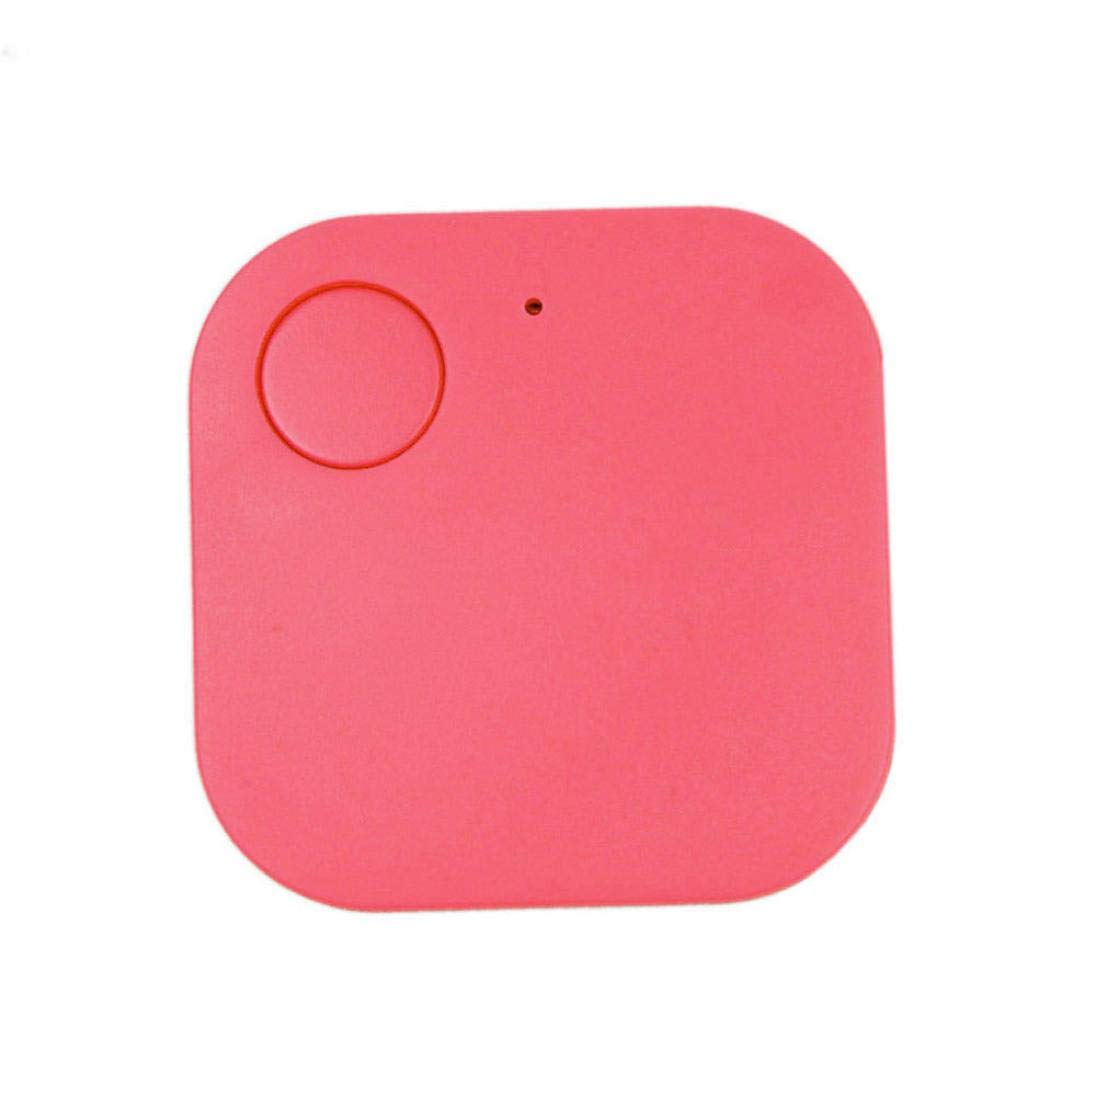 Iusun Anti Lost Device, Mini GPS Tracker Car Motor Kids Pets Wallet Keys Smart Alarm Locator Realtime Finder Device (Hot Pink)